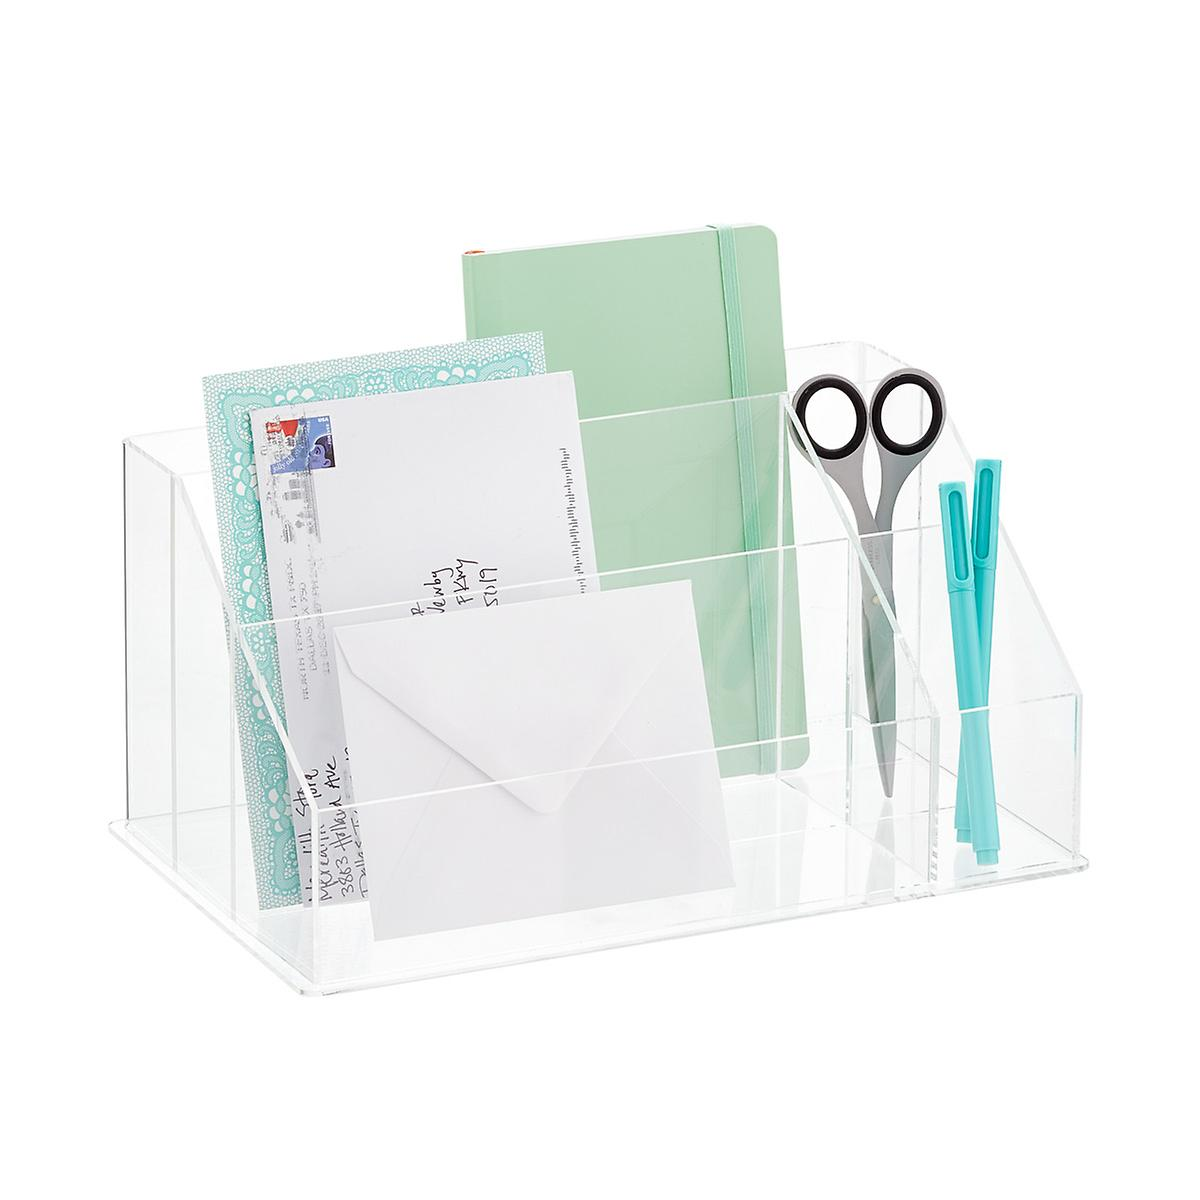 Acrylic Desktop Mail Center